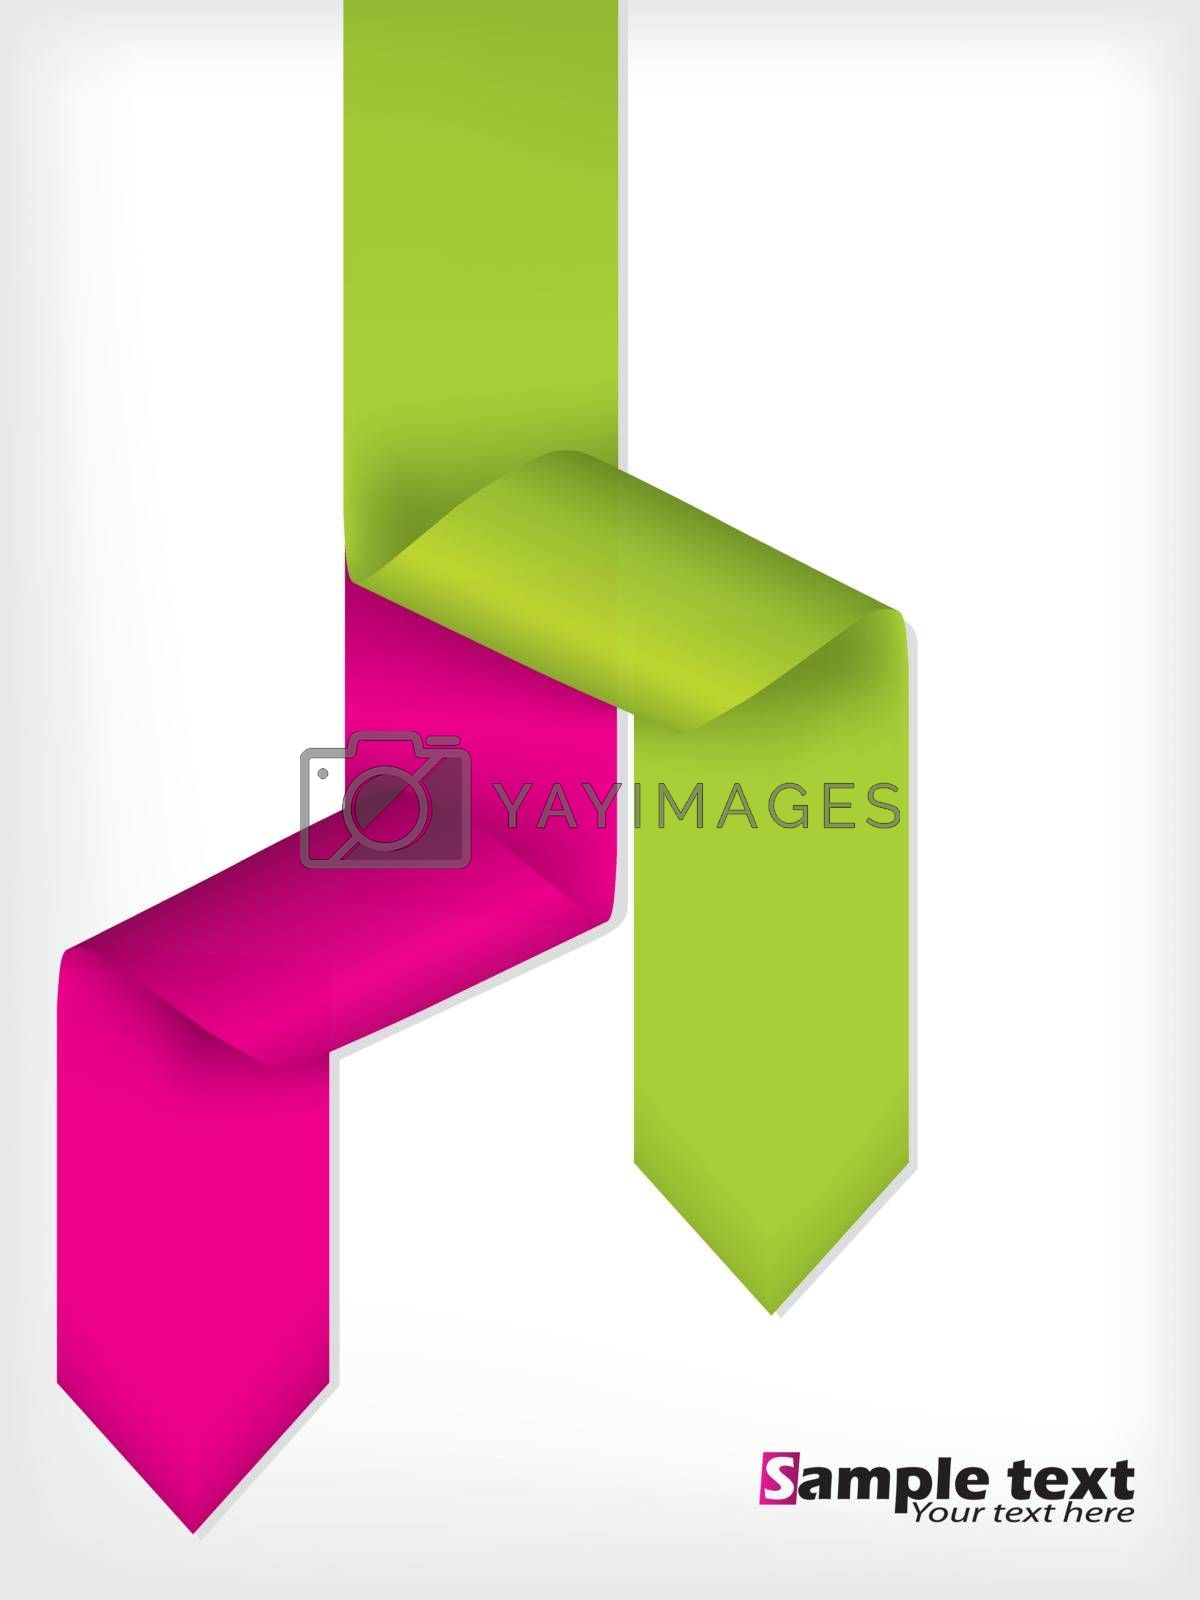 Abstract brochure design with pink and green arrow ribbons